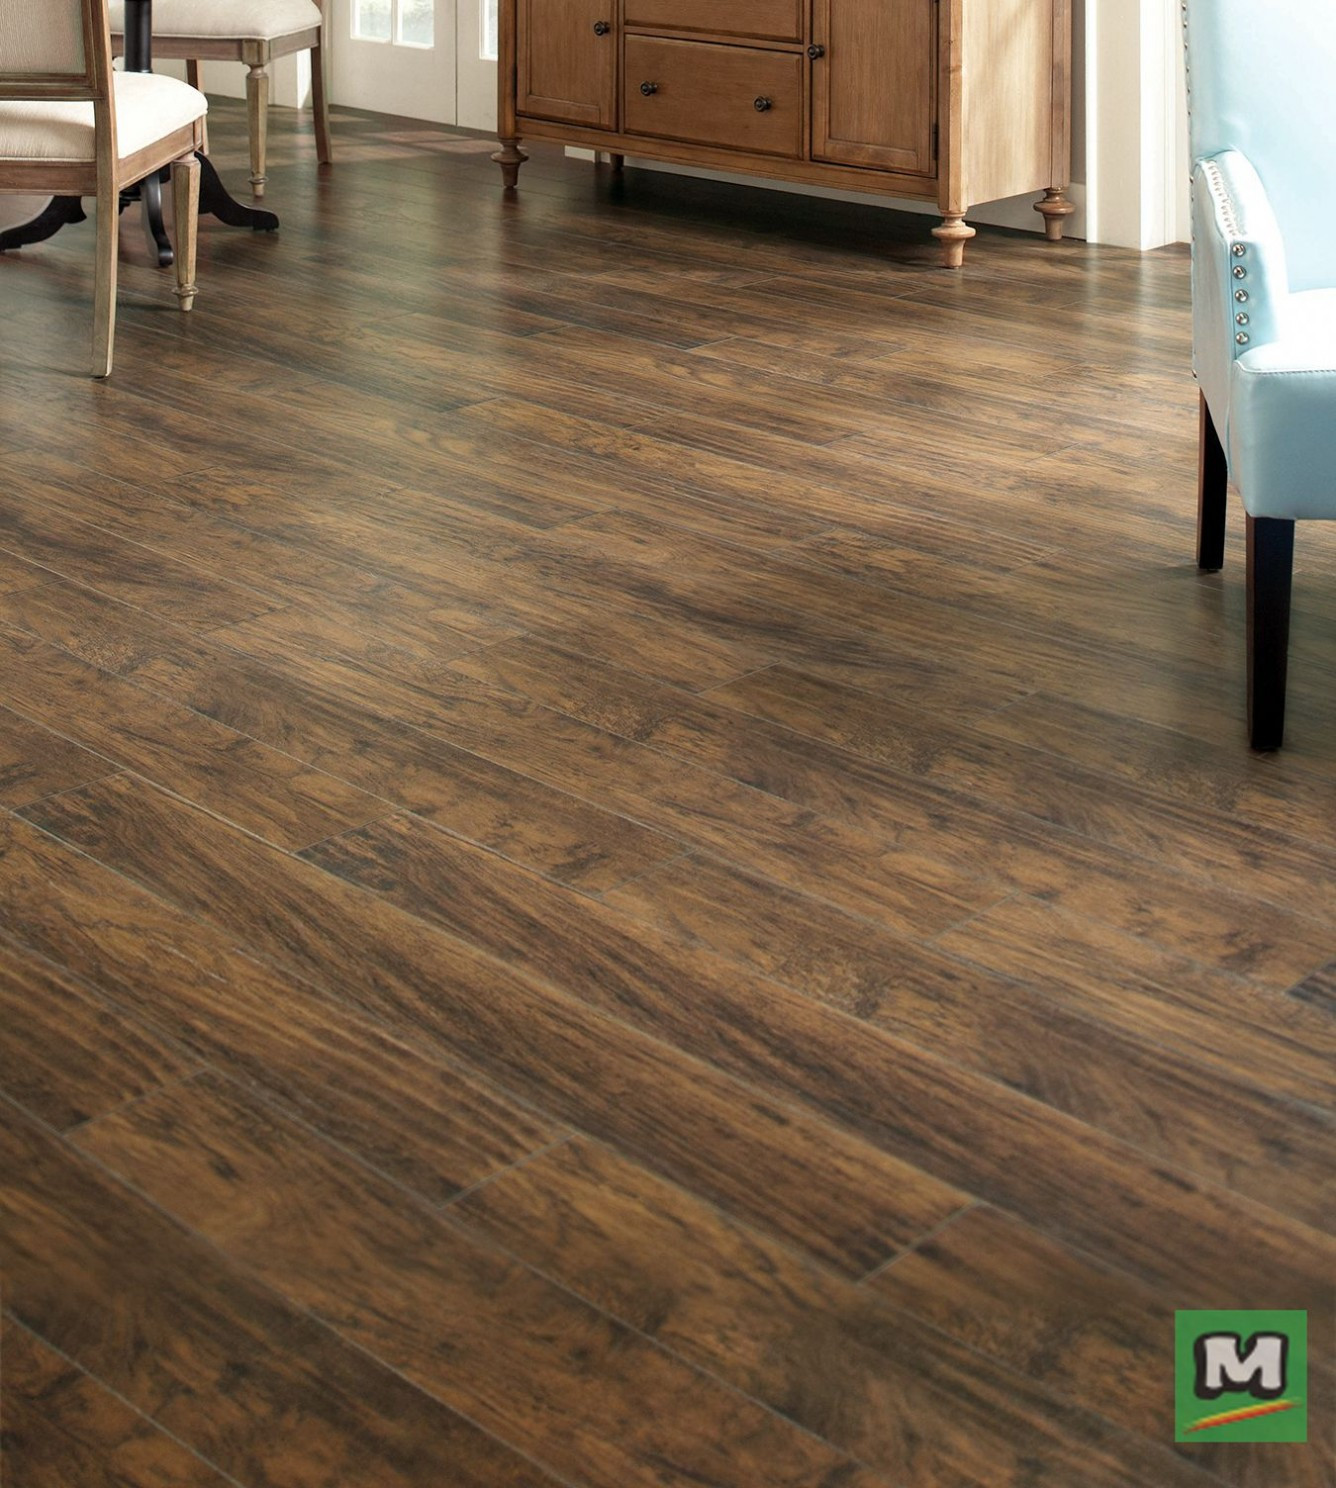 hickory hardwood flooring of monroe park hickory laminate flooring features a realistic texture within monroe park hickory laminate flooring features a realistic texture